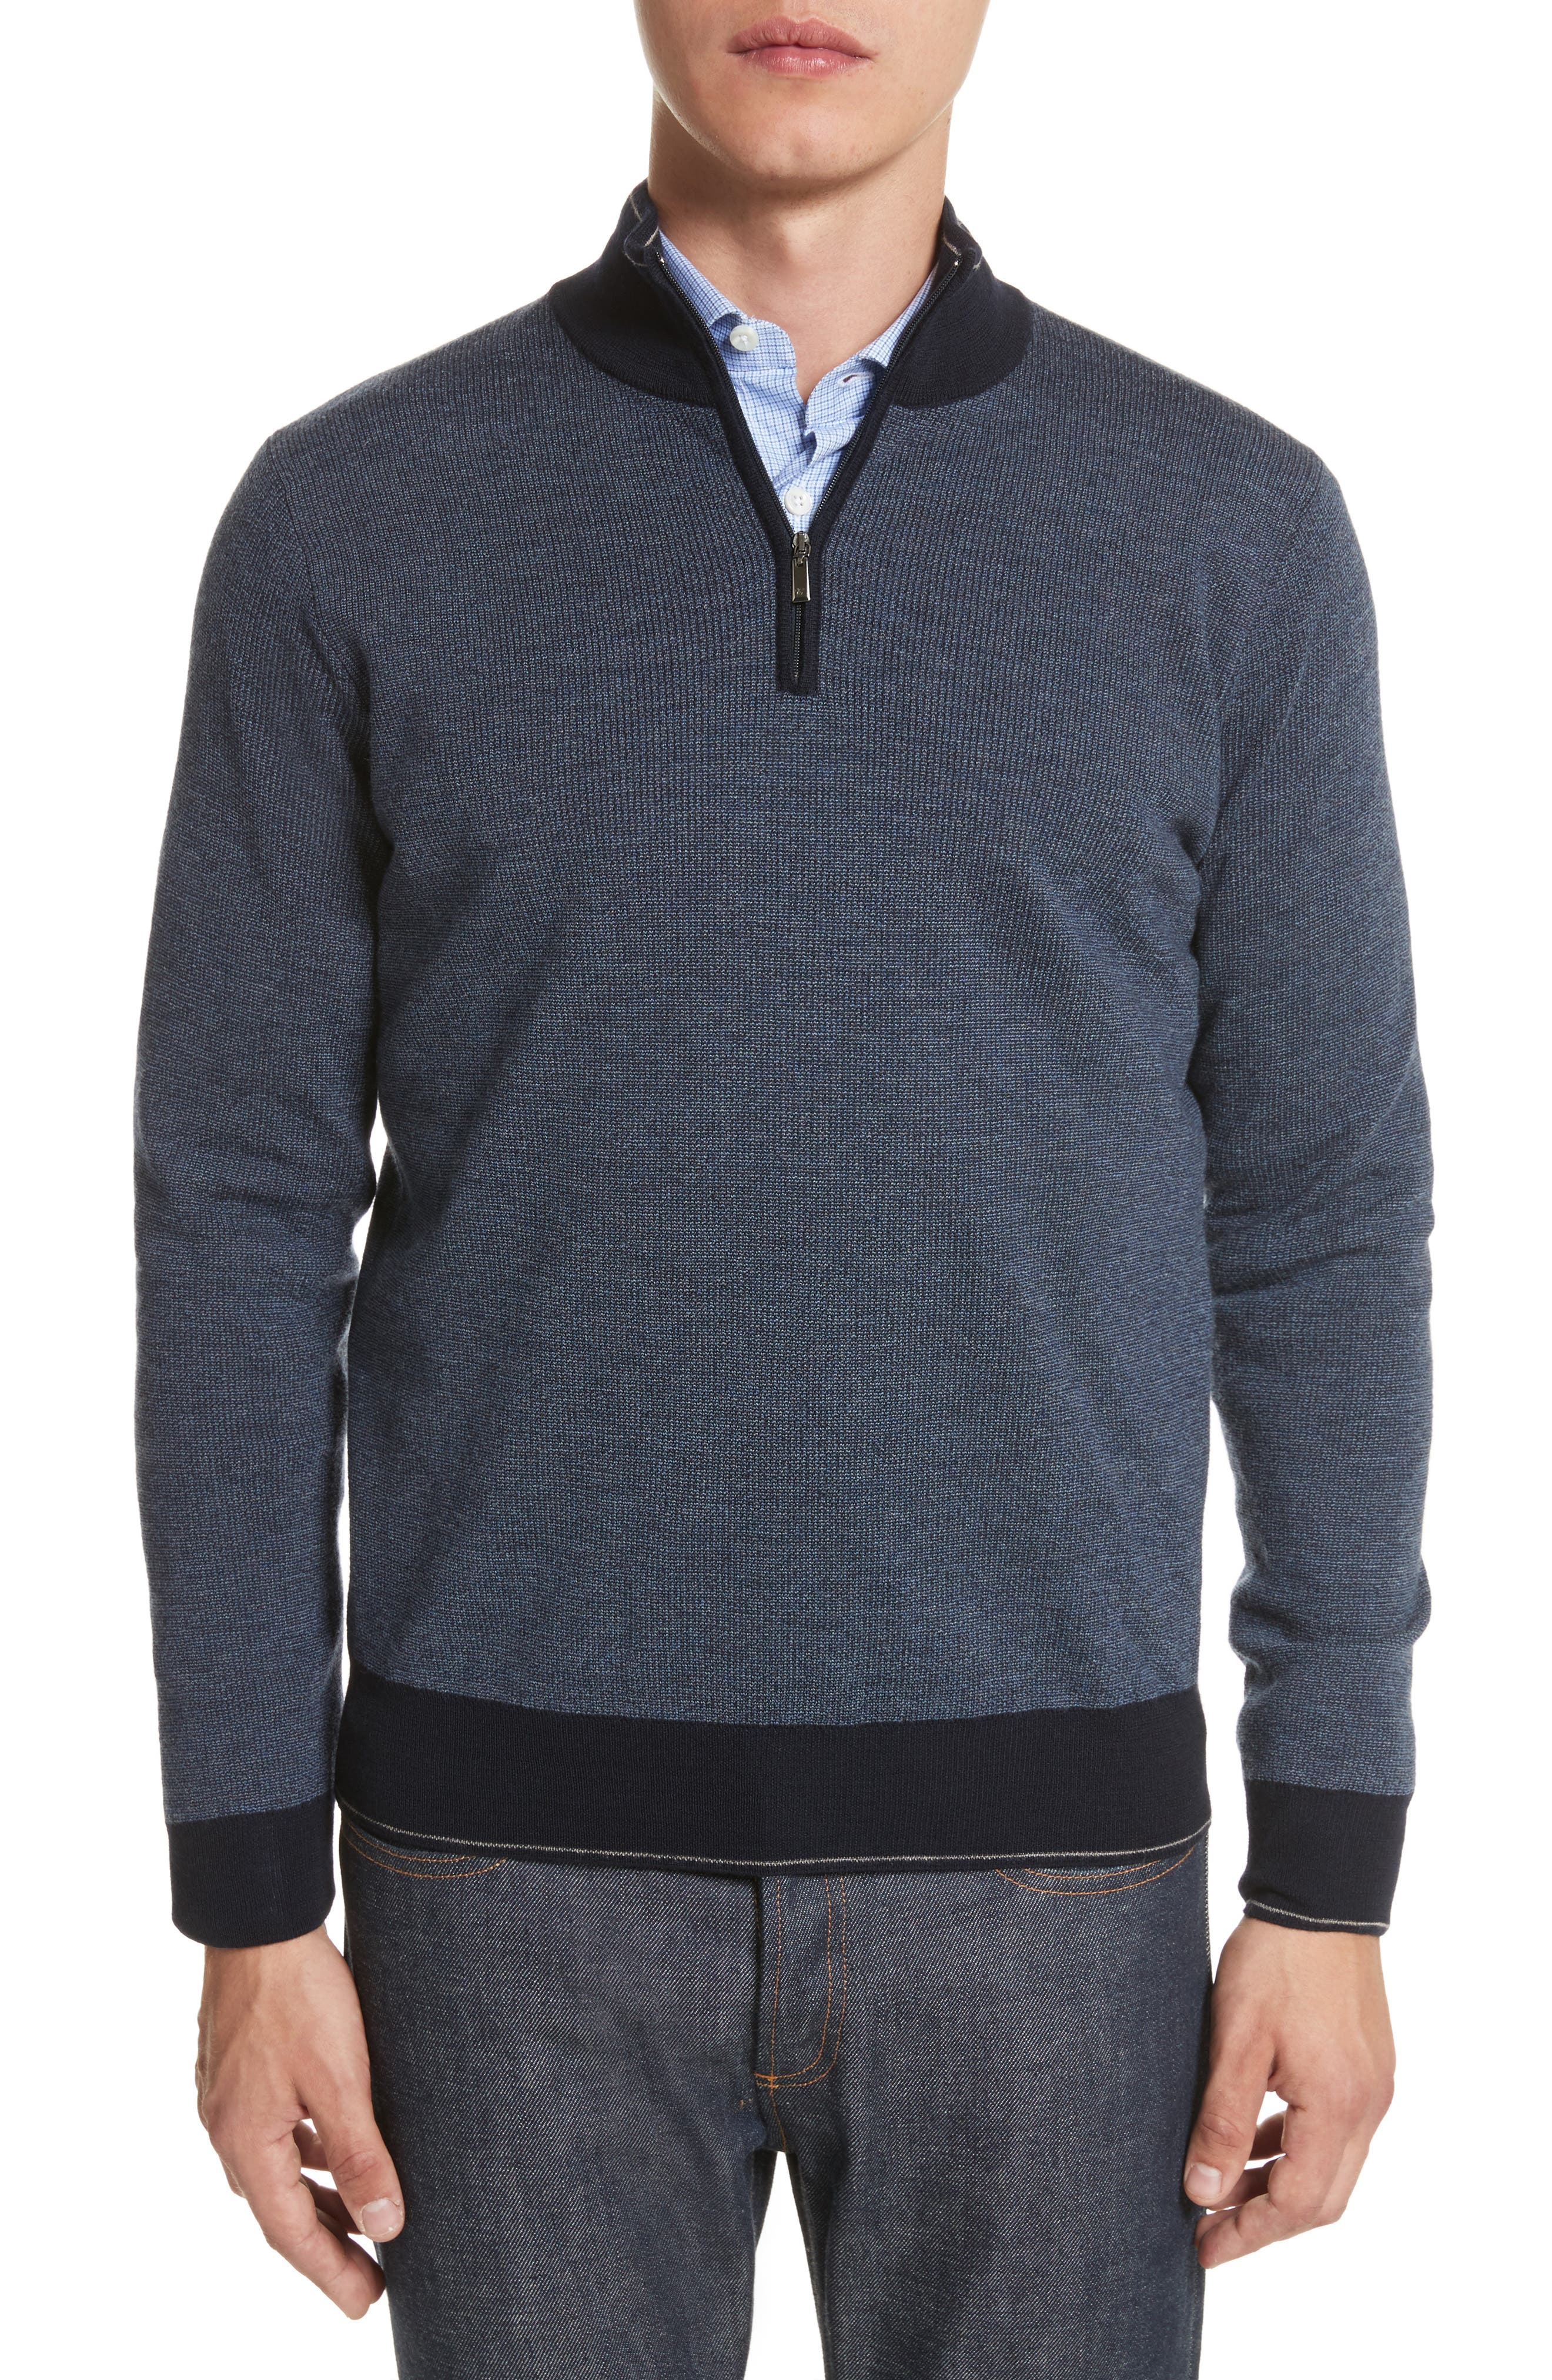 Quarter Zip Wool Sweater,                             Main thumbnail 1, color,                             401